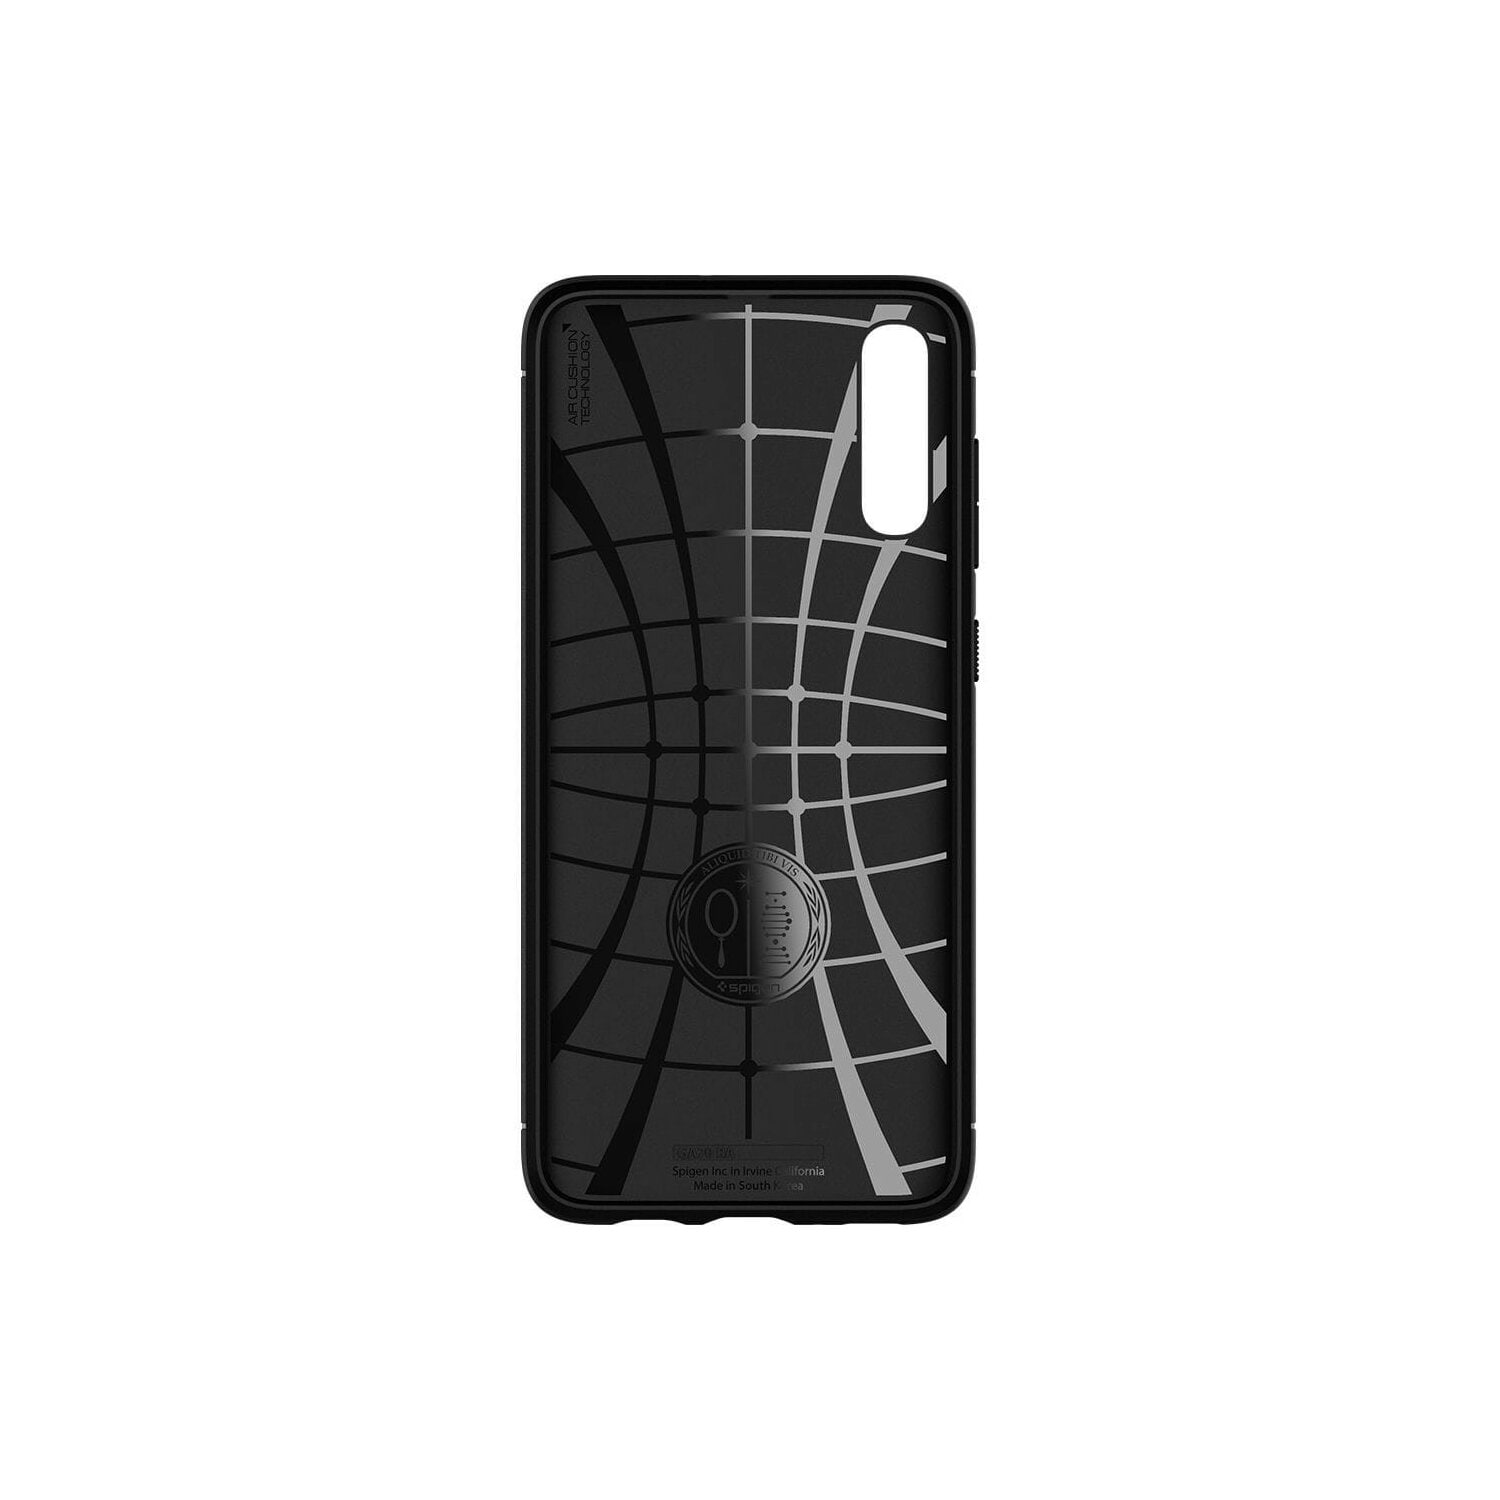 Etui SPIGEN Rugged Armor do Samsung Galaxy A70 Czarny matowy